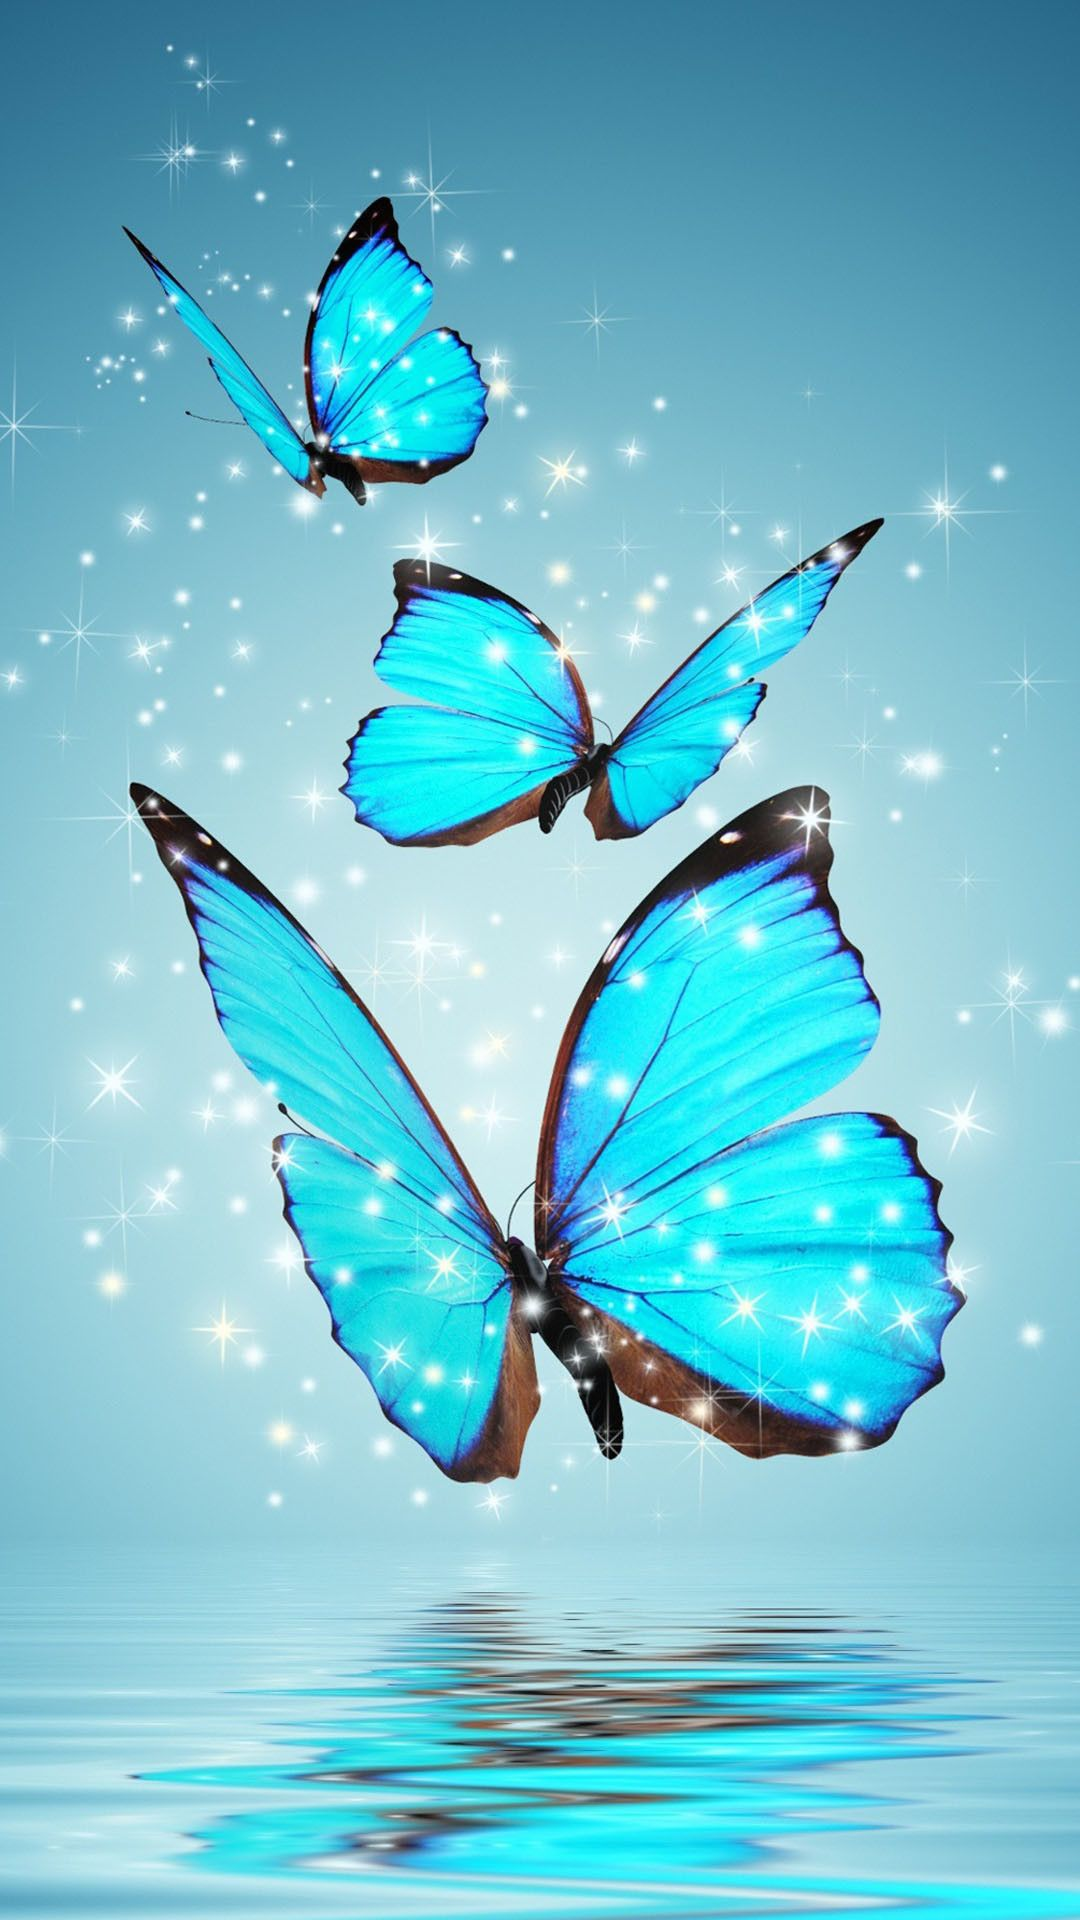 Blue Sparkling Butterflies Android Wallpaper Download 1080x1920 In 2020 Butterfly Wallpaper Blue Butterfly Wallpaper Butterfly Background